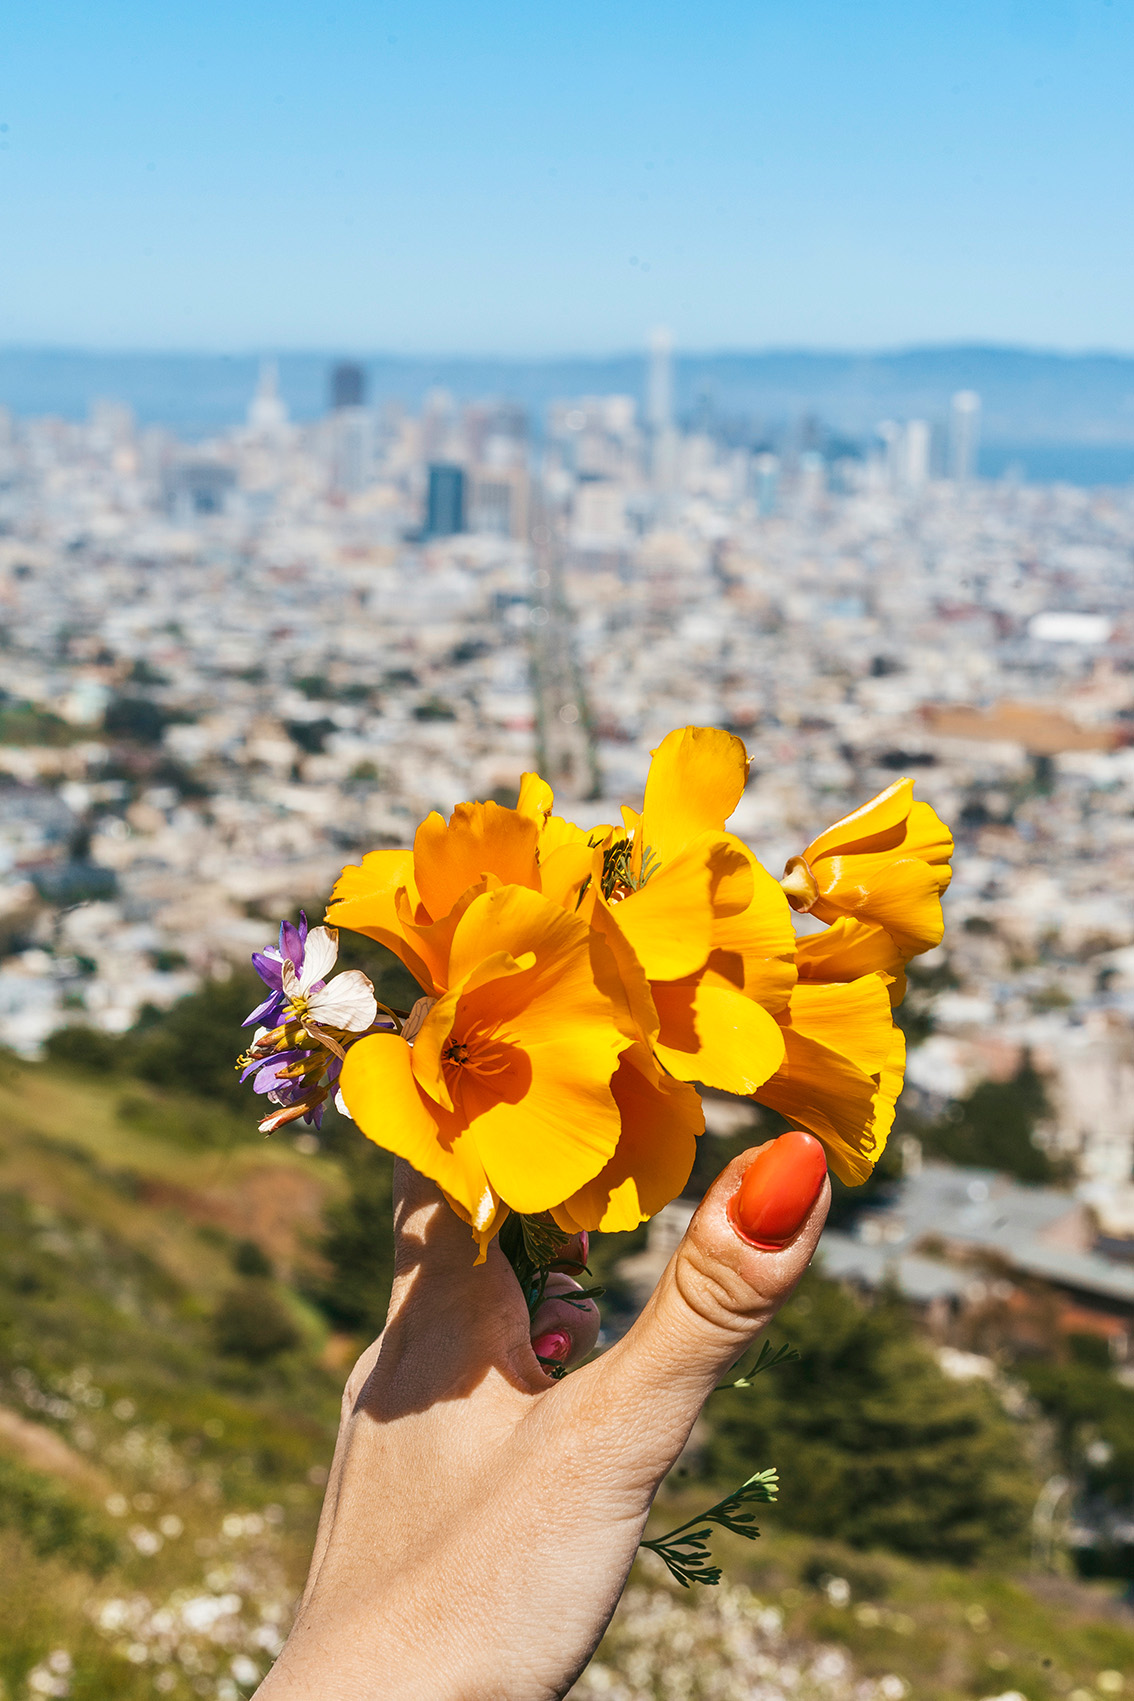 38 10 most instagrammable places in San Francisco you don't have to miss!